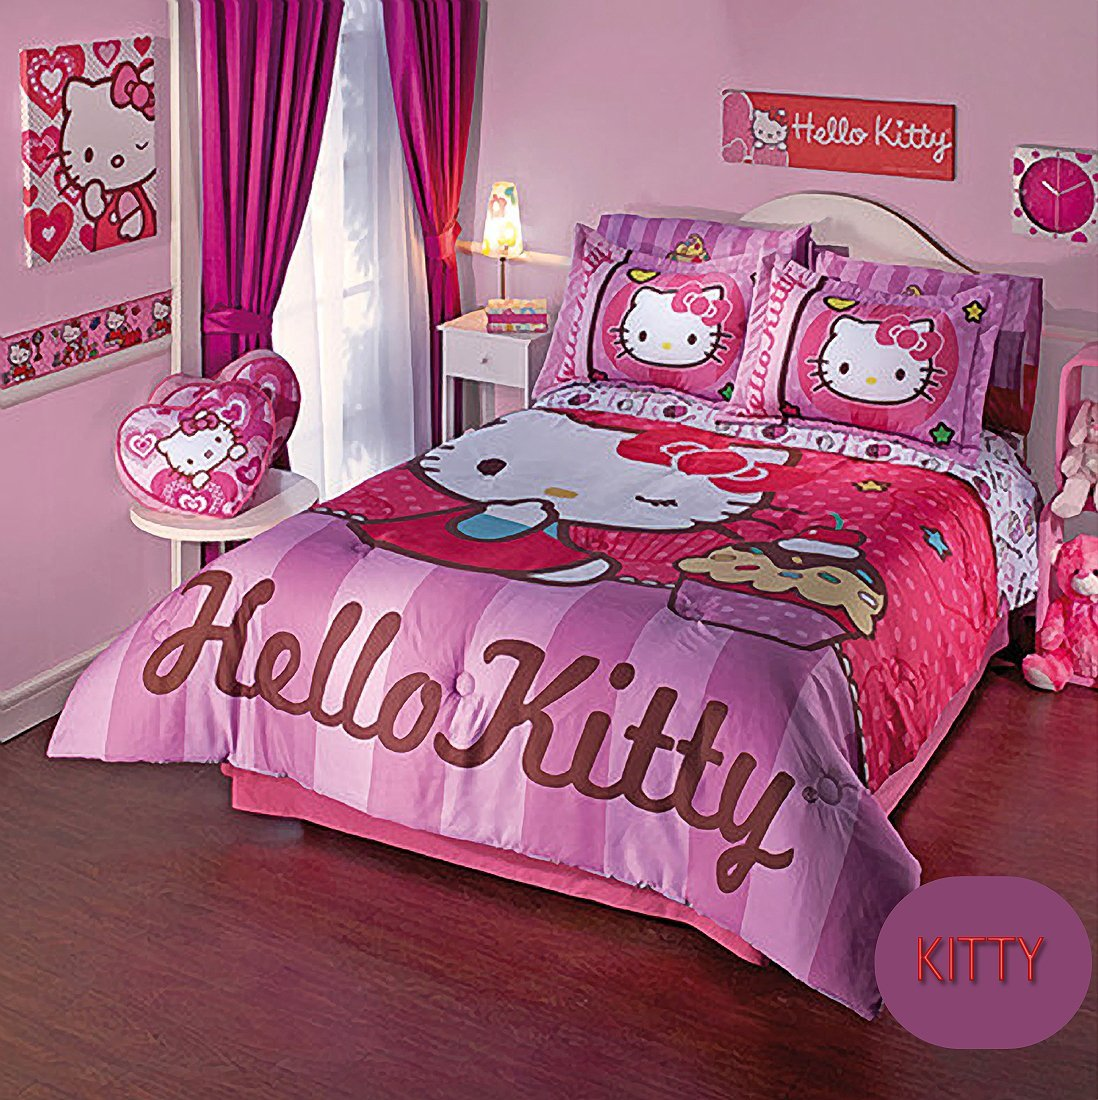 4a95f2cac Get Quotations · Hello Kitty Cupcake Reversible Comforter Set 4 Pcs. / Ind.  - Twin